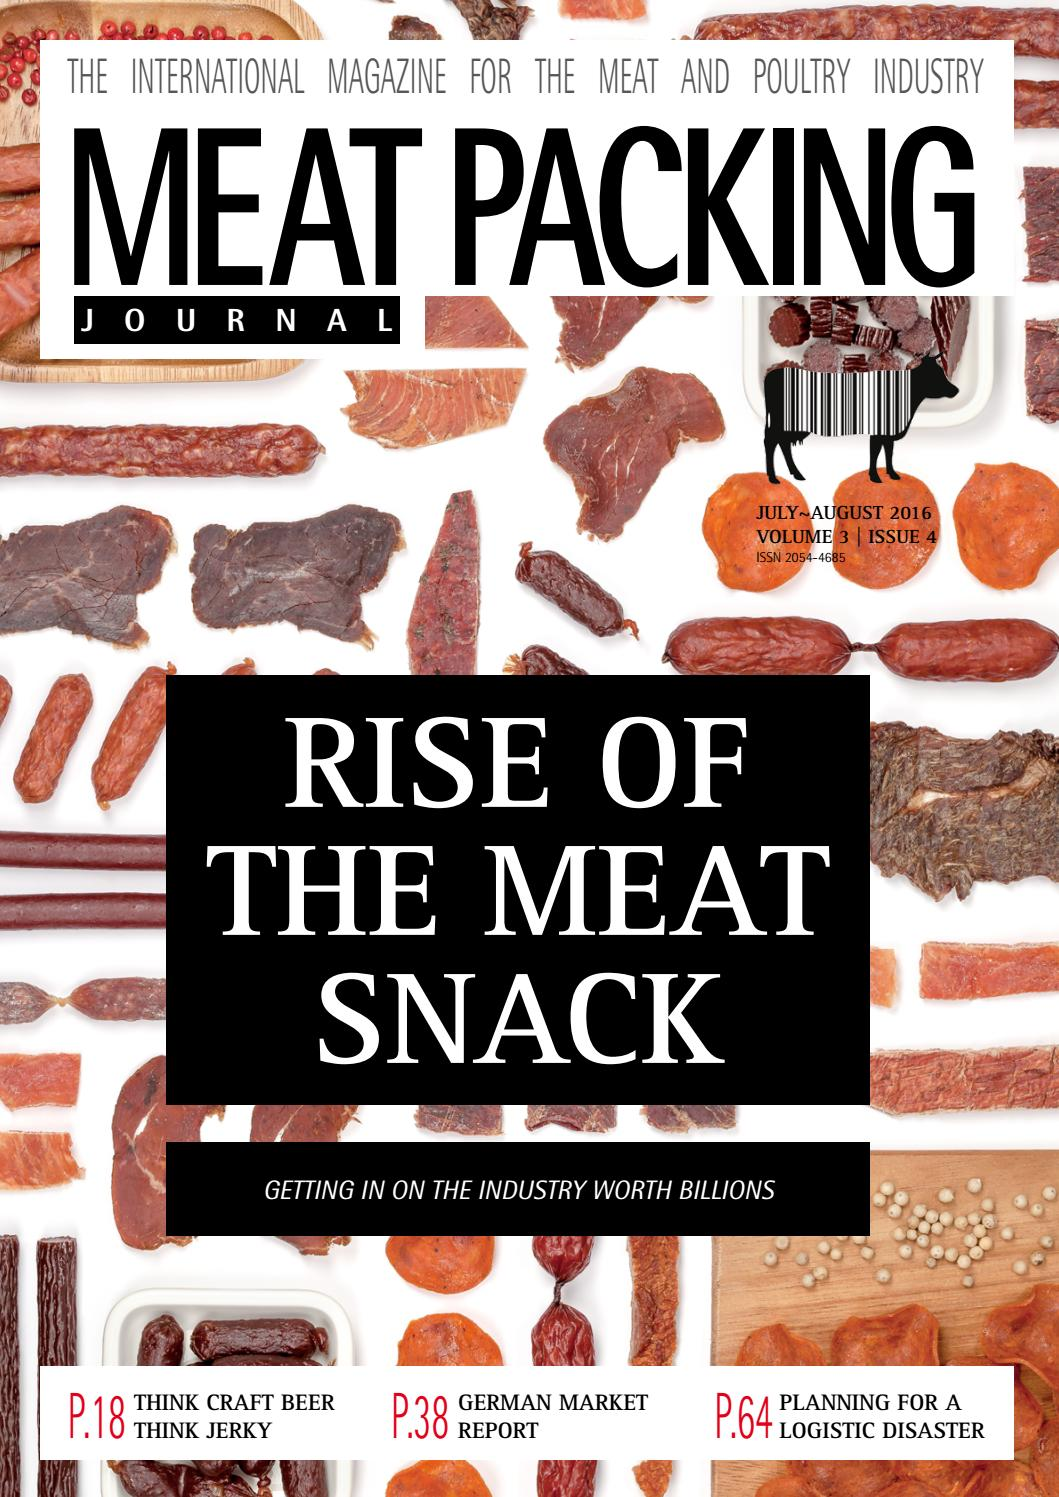 Meat Packing Journal Jul Aug 2016 Vol 3 Iss 4 By Reby